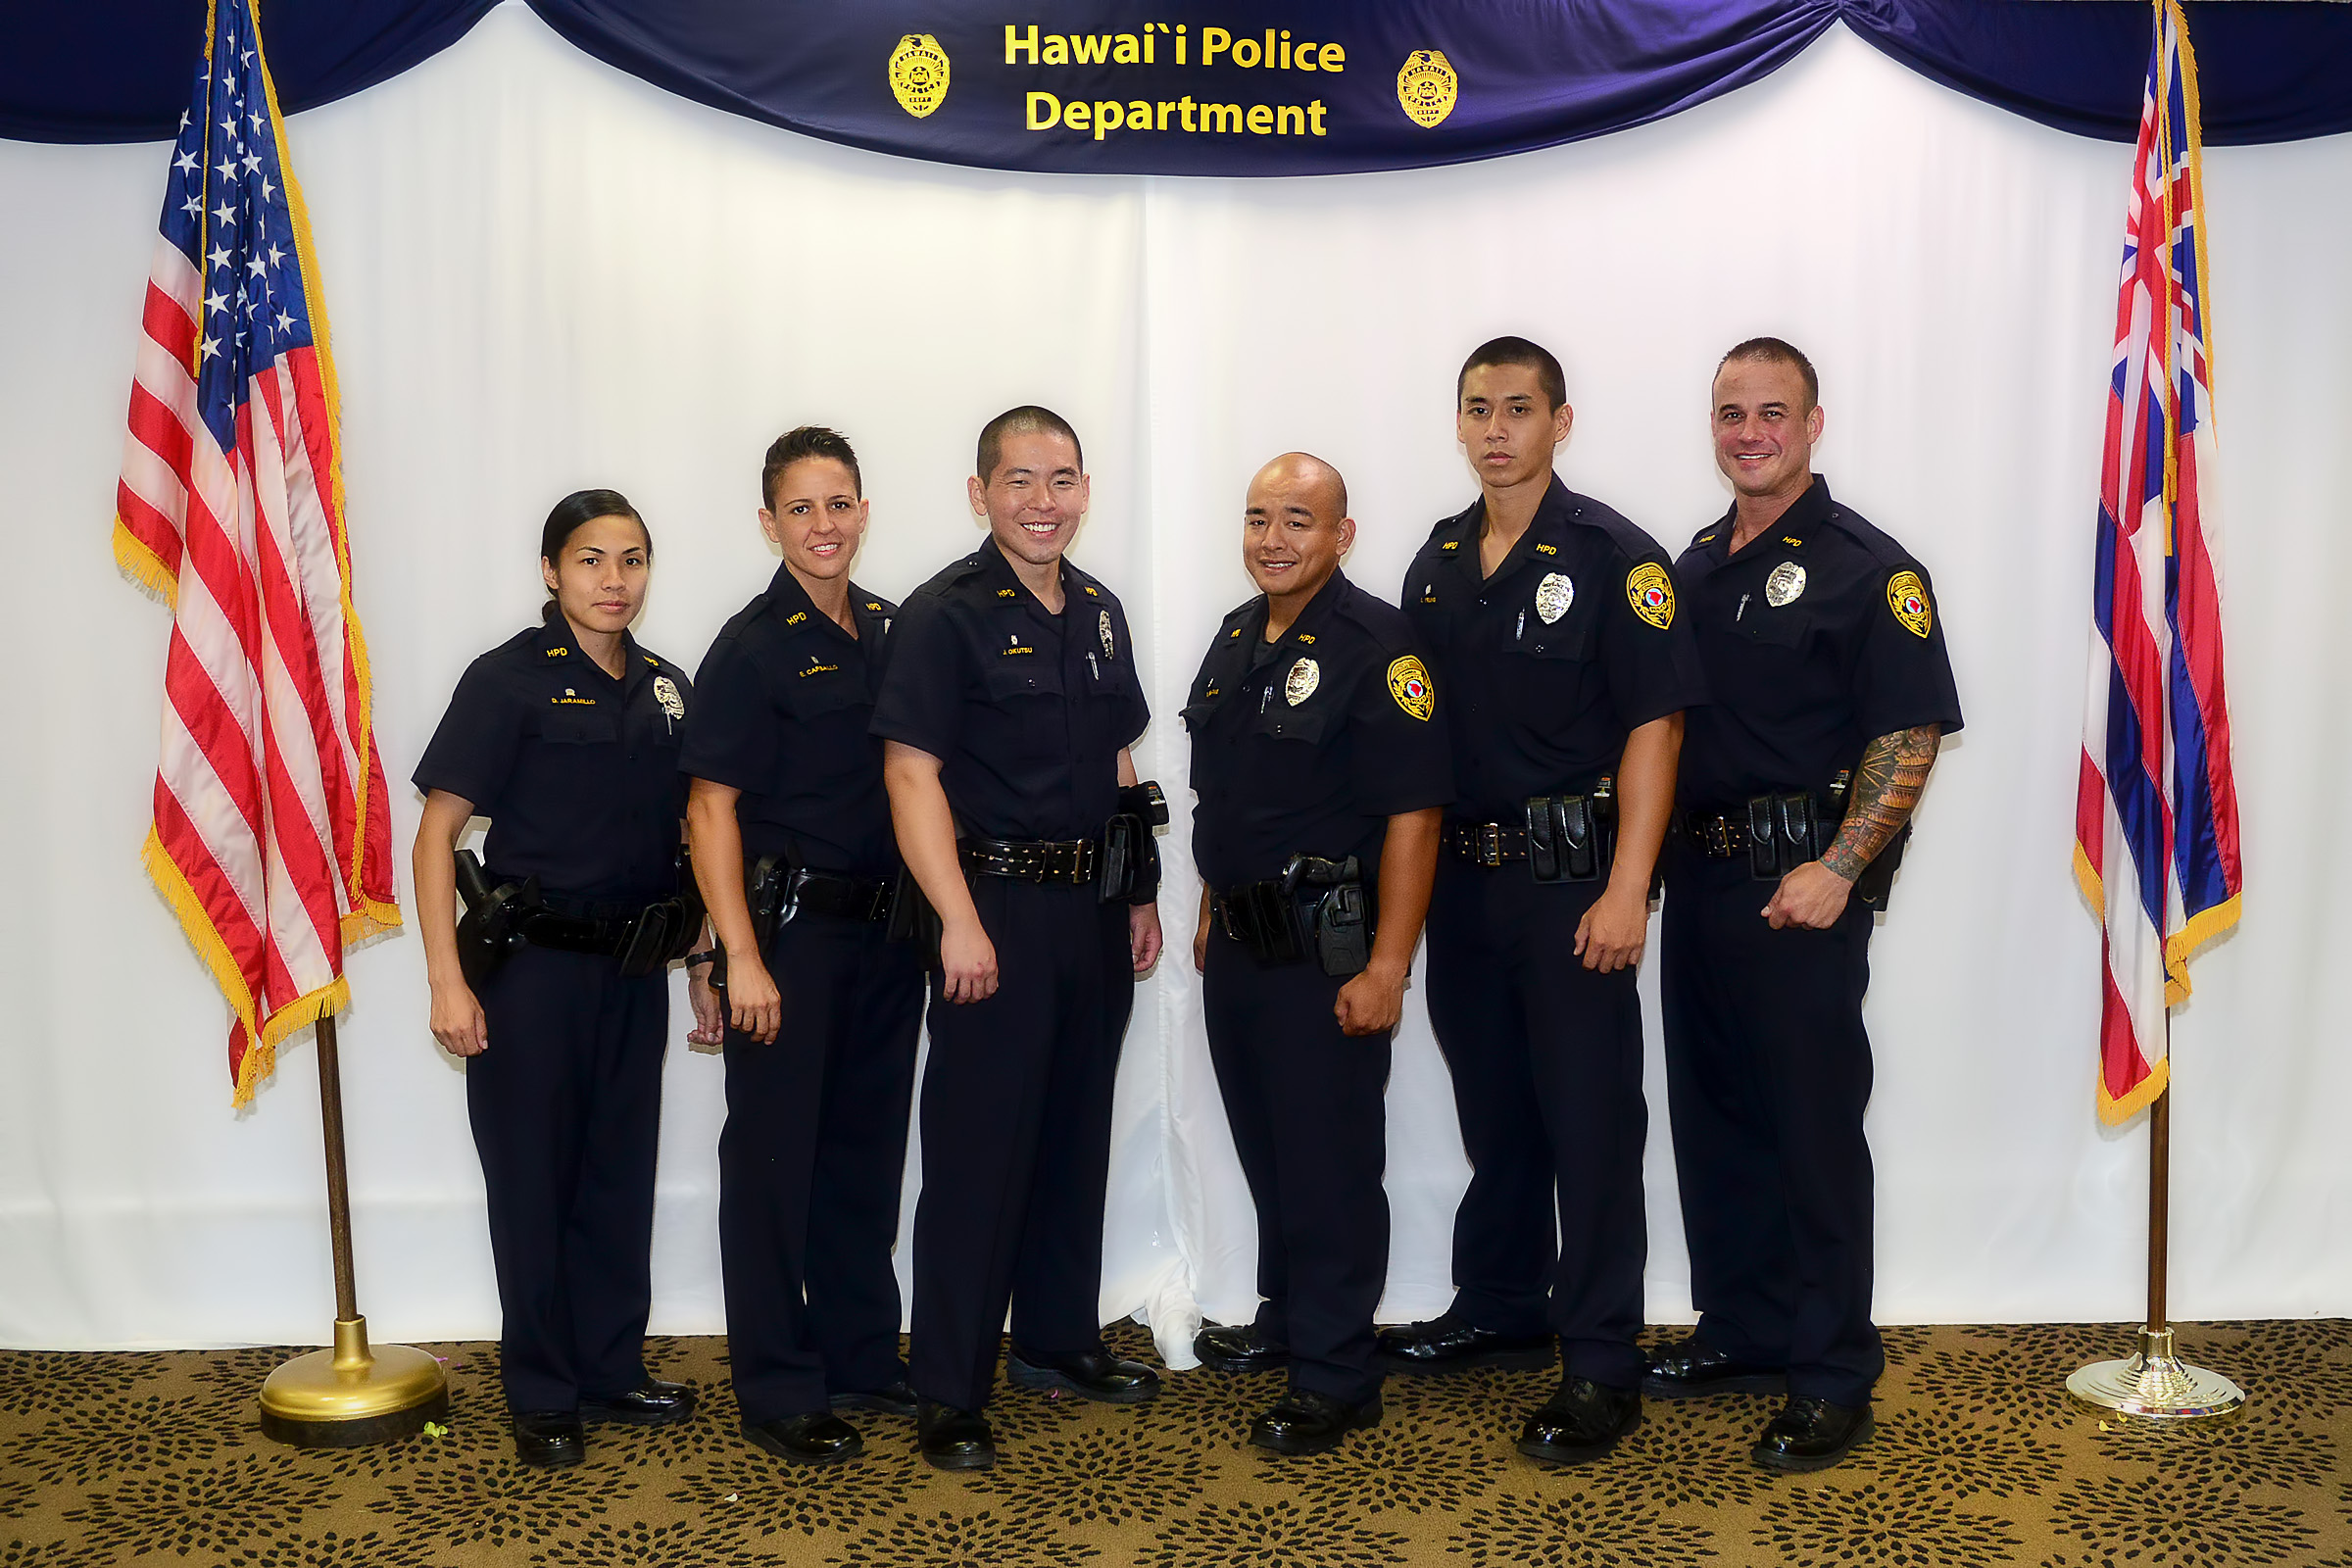 how to become a hpd officer